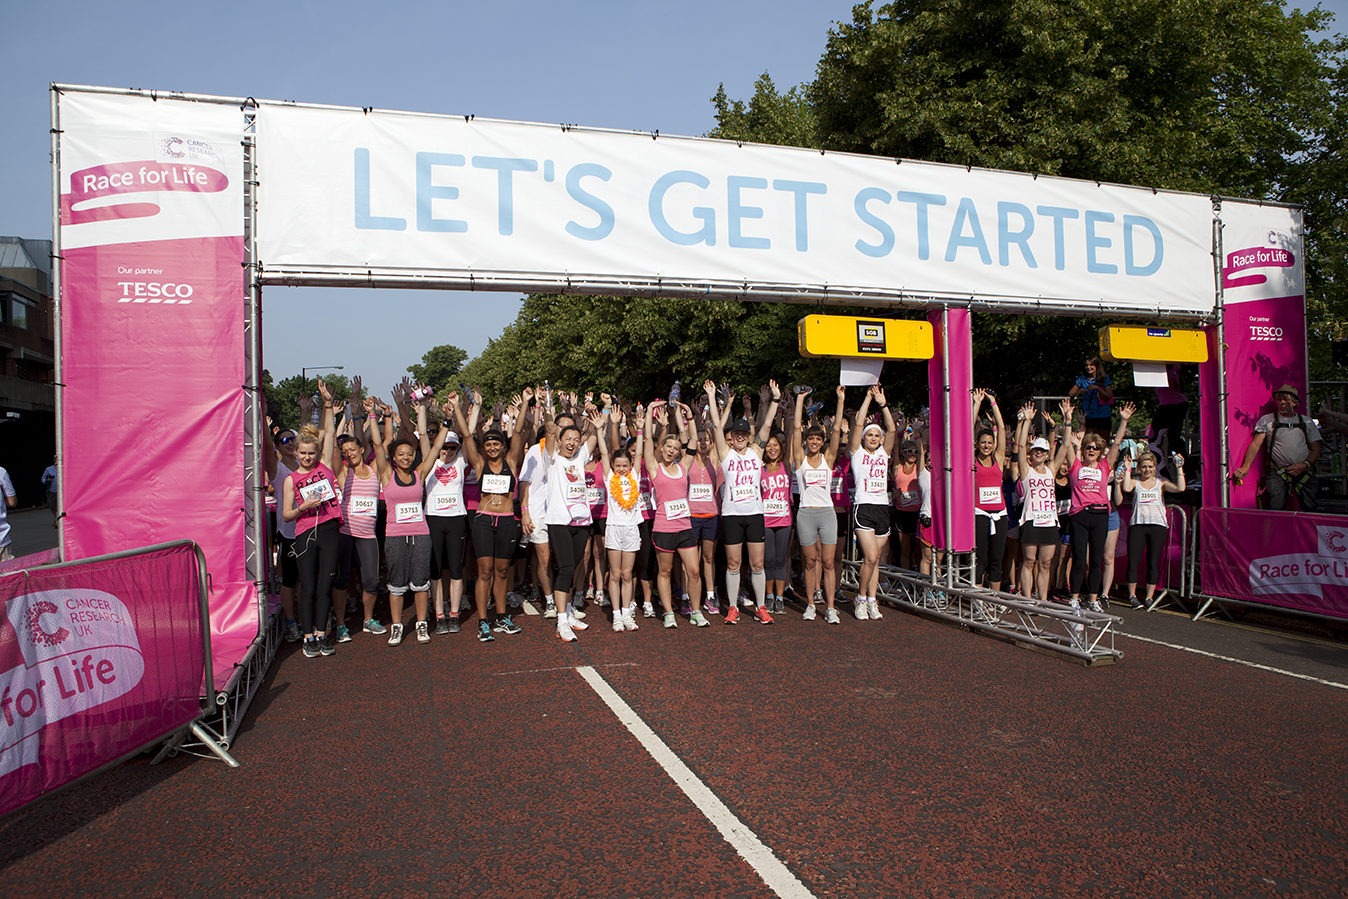 Can%27t wait to Race for Life